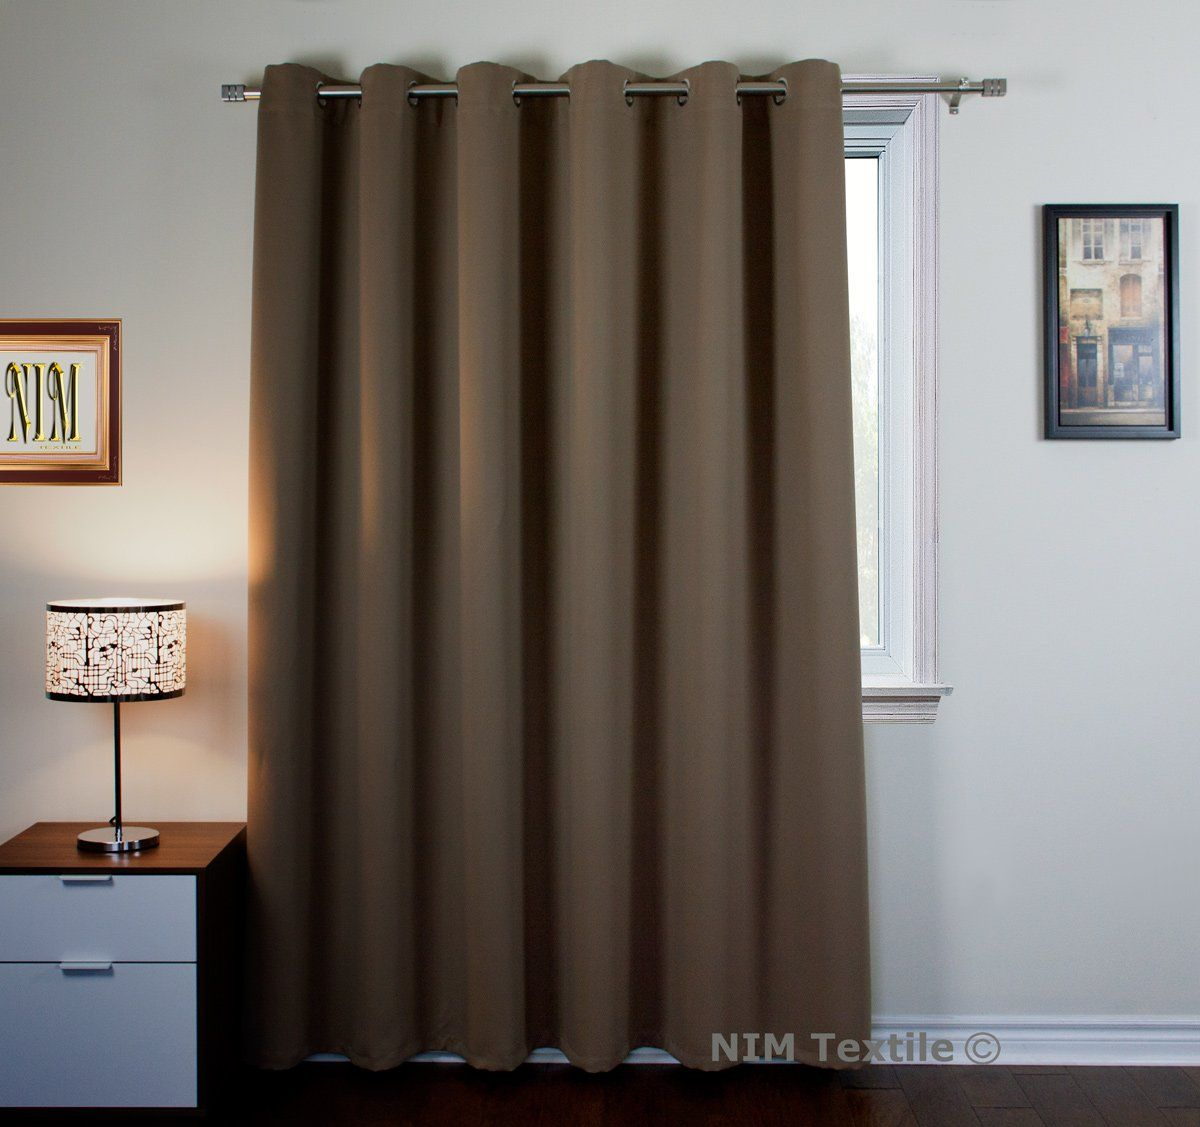 Nim Textile Grommet Curtains Thermal Insulated Blackout Drapes 95